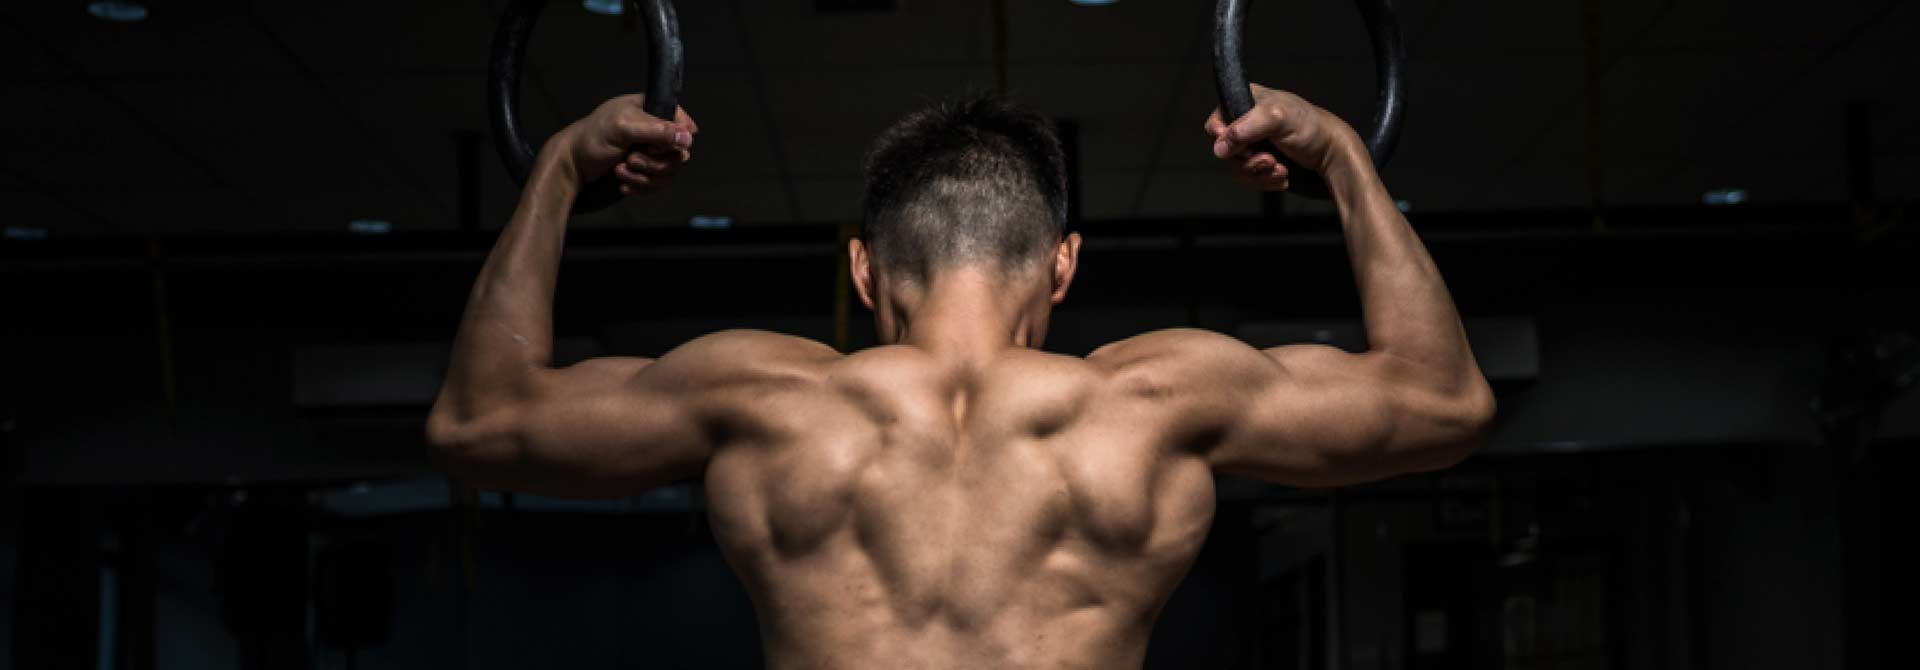 Two Best Upper Body Exercise To Fire Up Your Rear Delts